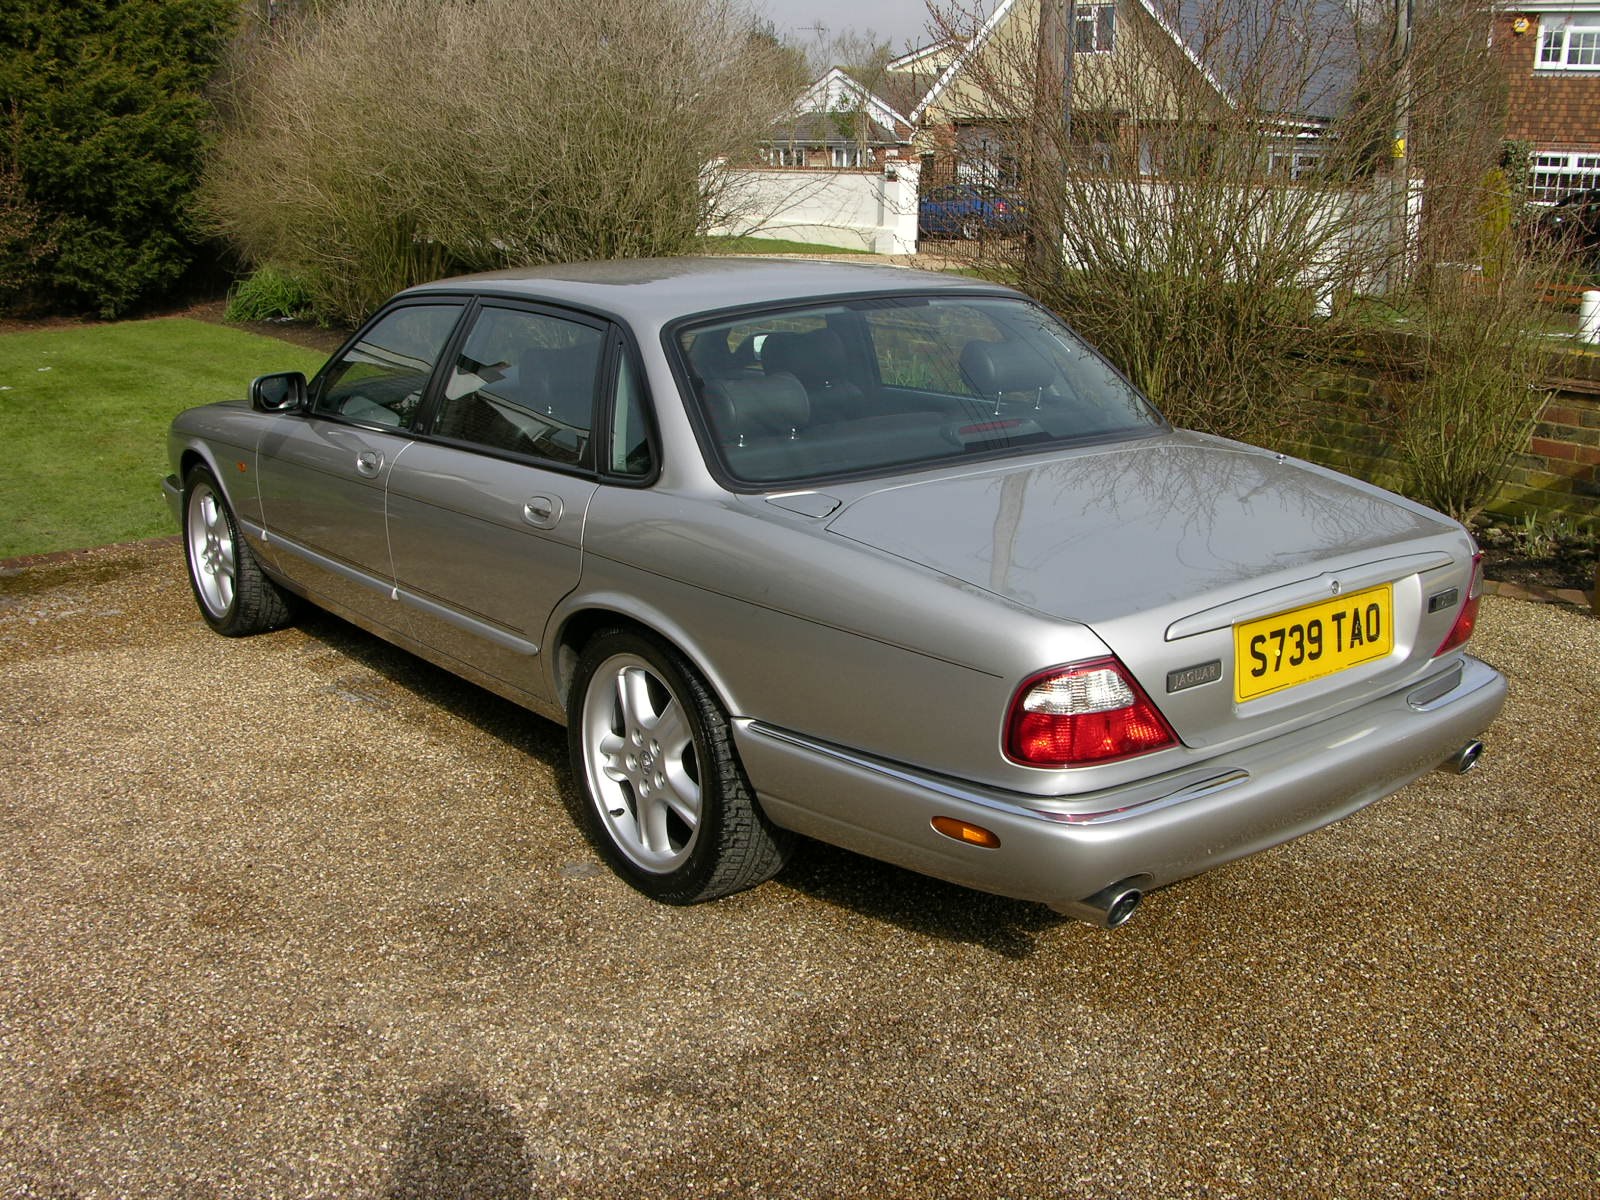 File Jaguar Xjr 1998 Flickr The Car Spy 9 Jpg